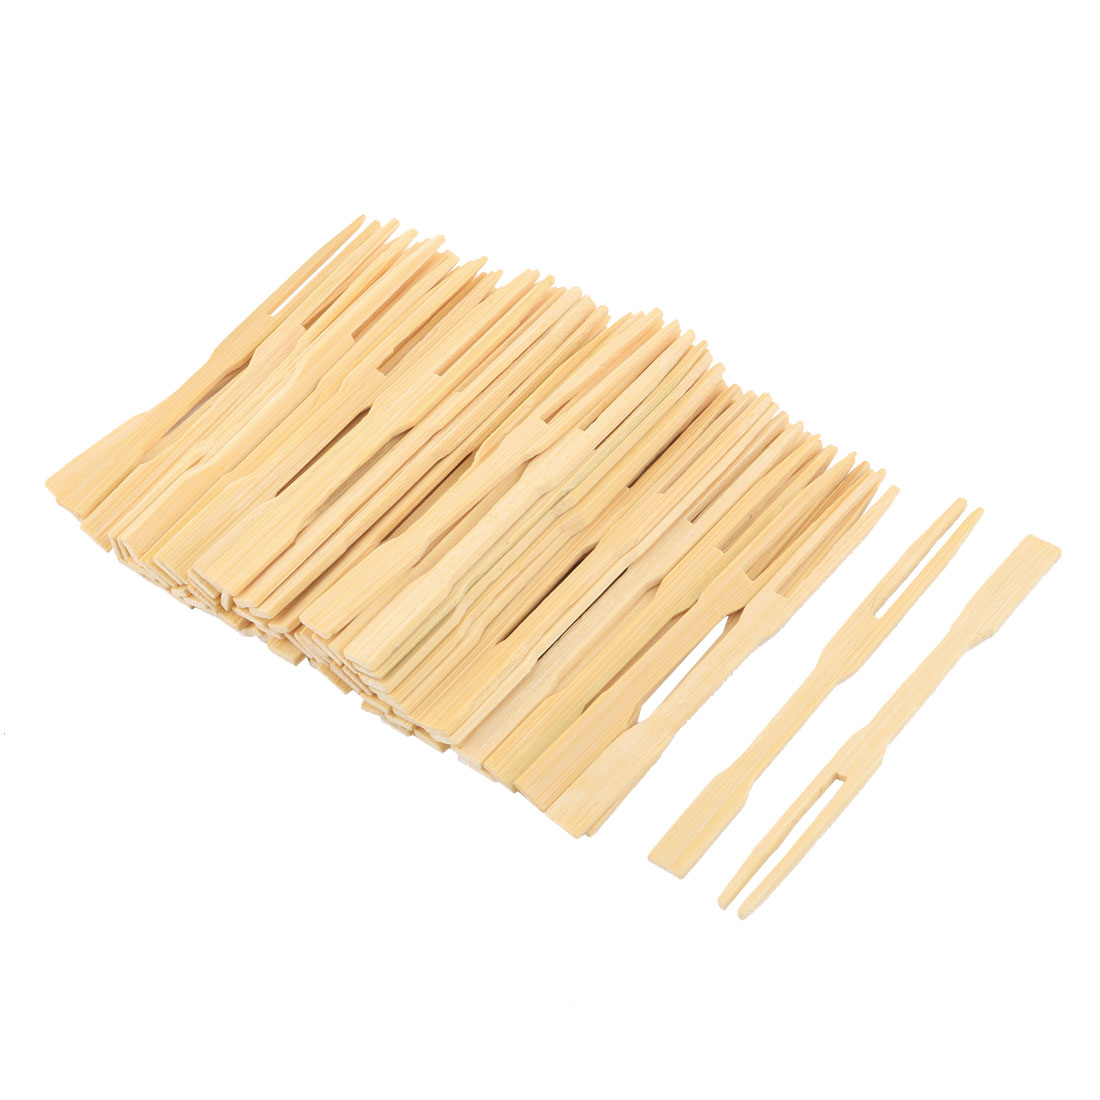 Home Bamboo Cocktail Forks Fruit Picks Skewers Sticks Beige 3.5 Inches Length 85pcs